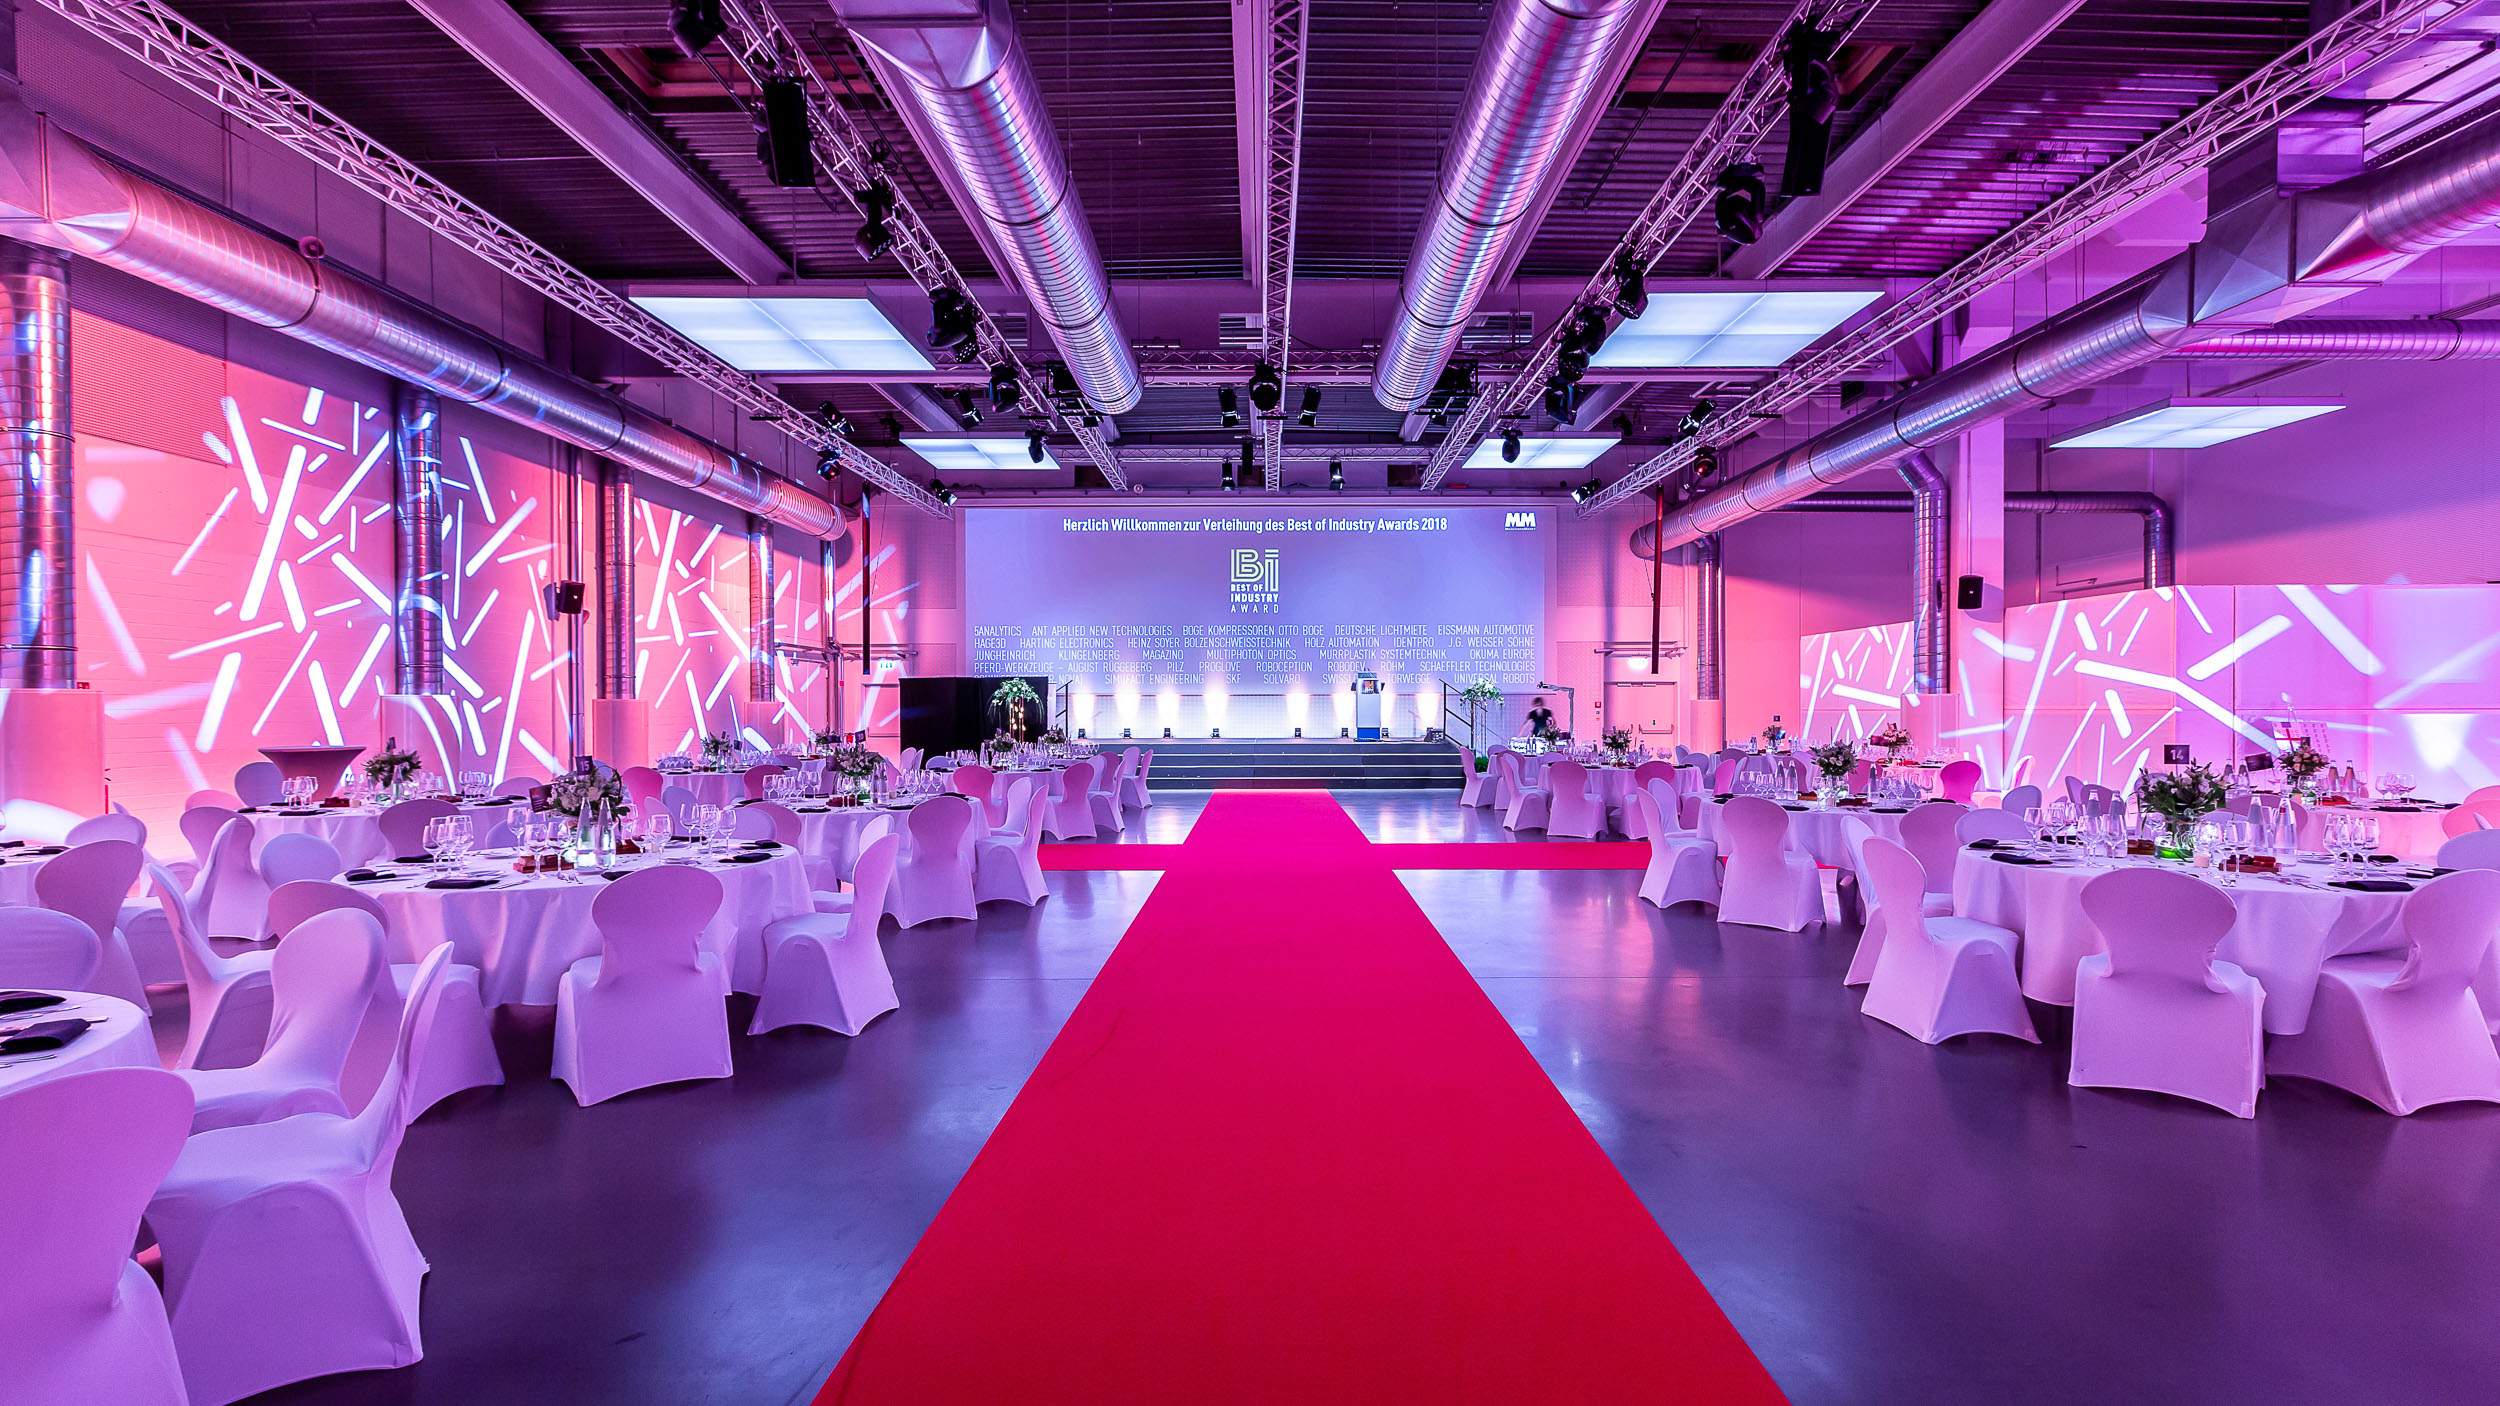 Best of Industry Award - Preisverleihung in der Rotationshalle